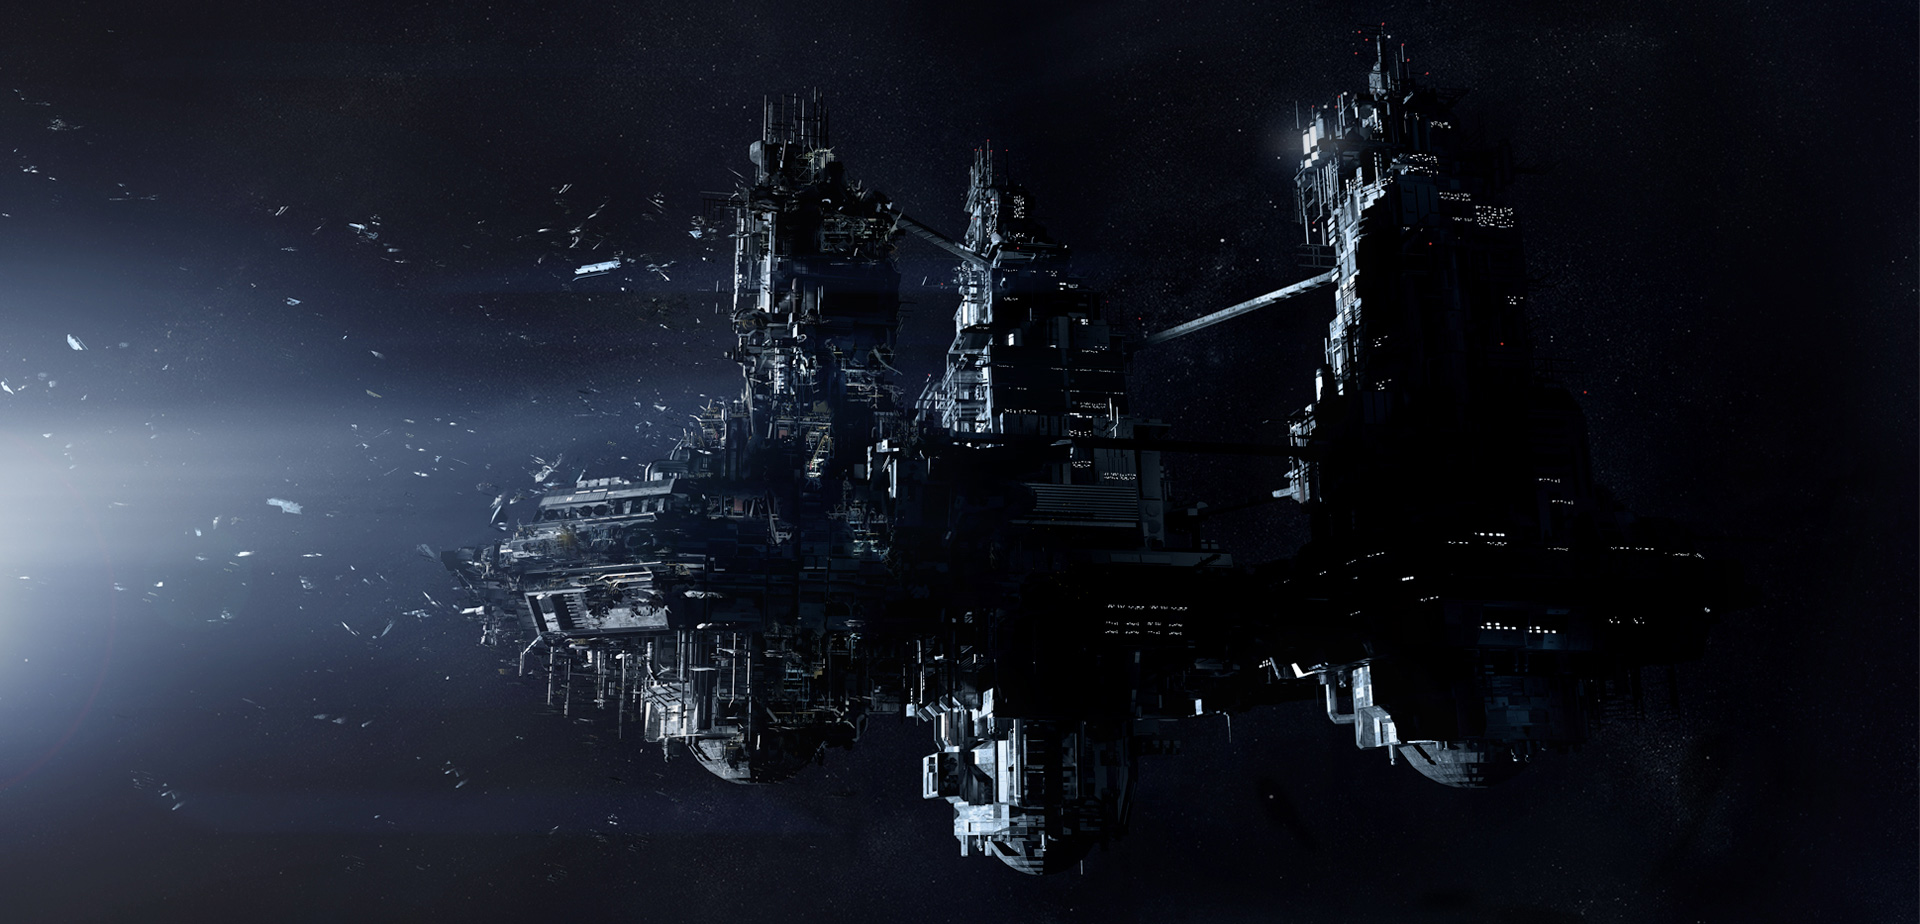 Sevastopol Space Station, in which you will be chased relentlessly by the alien. Welcome home!